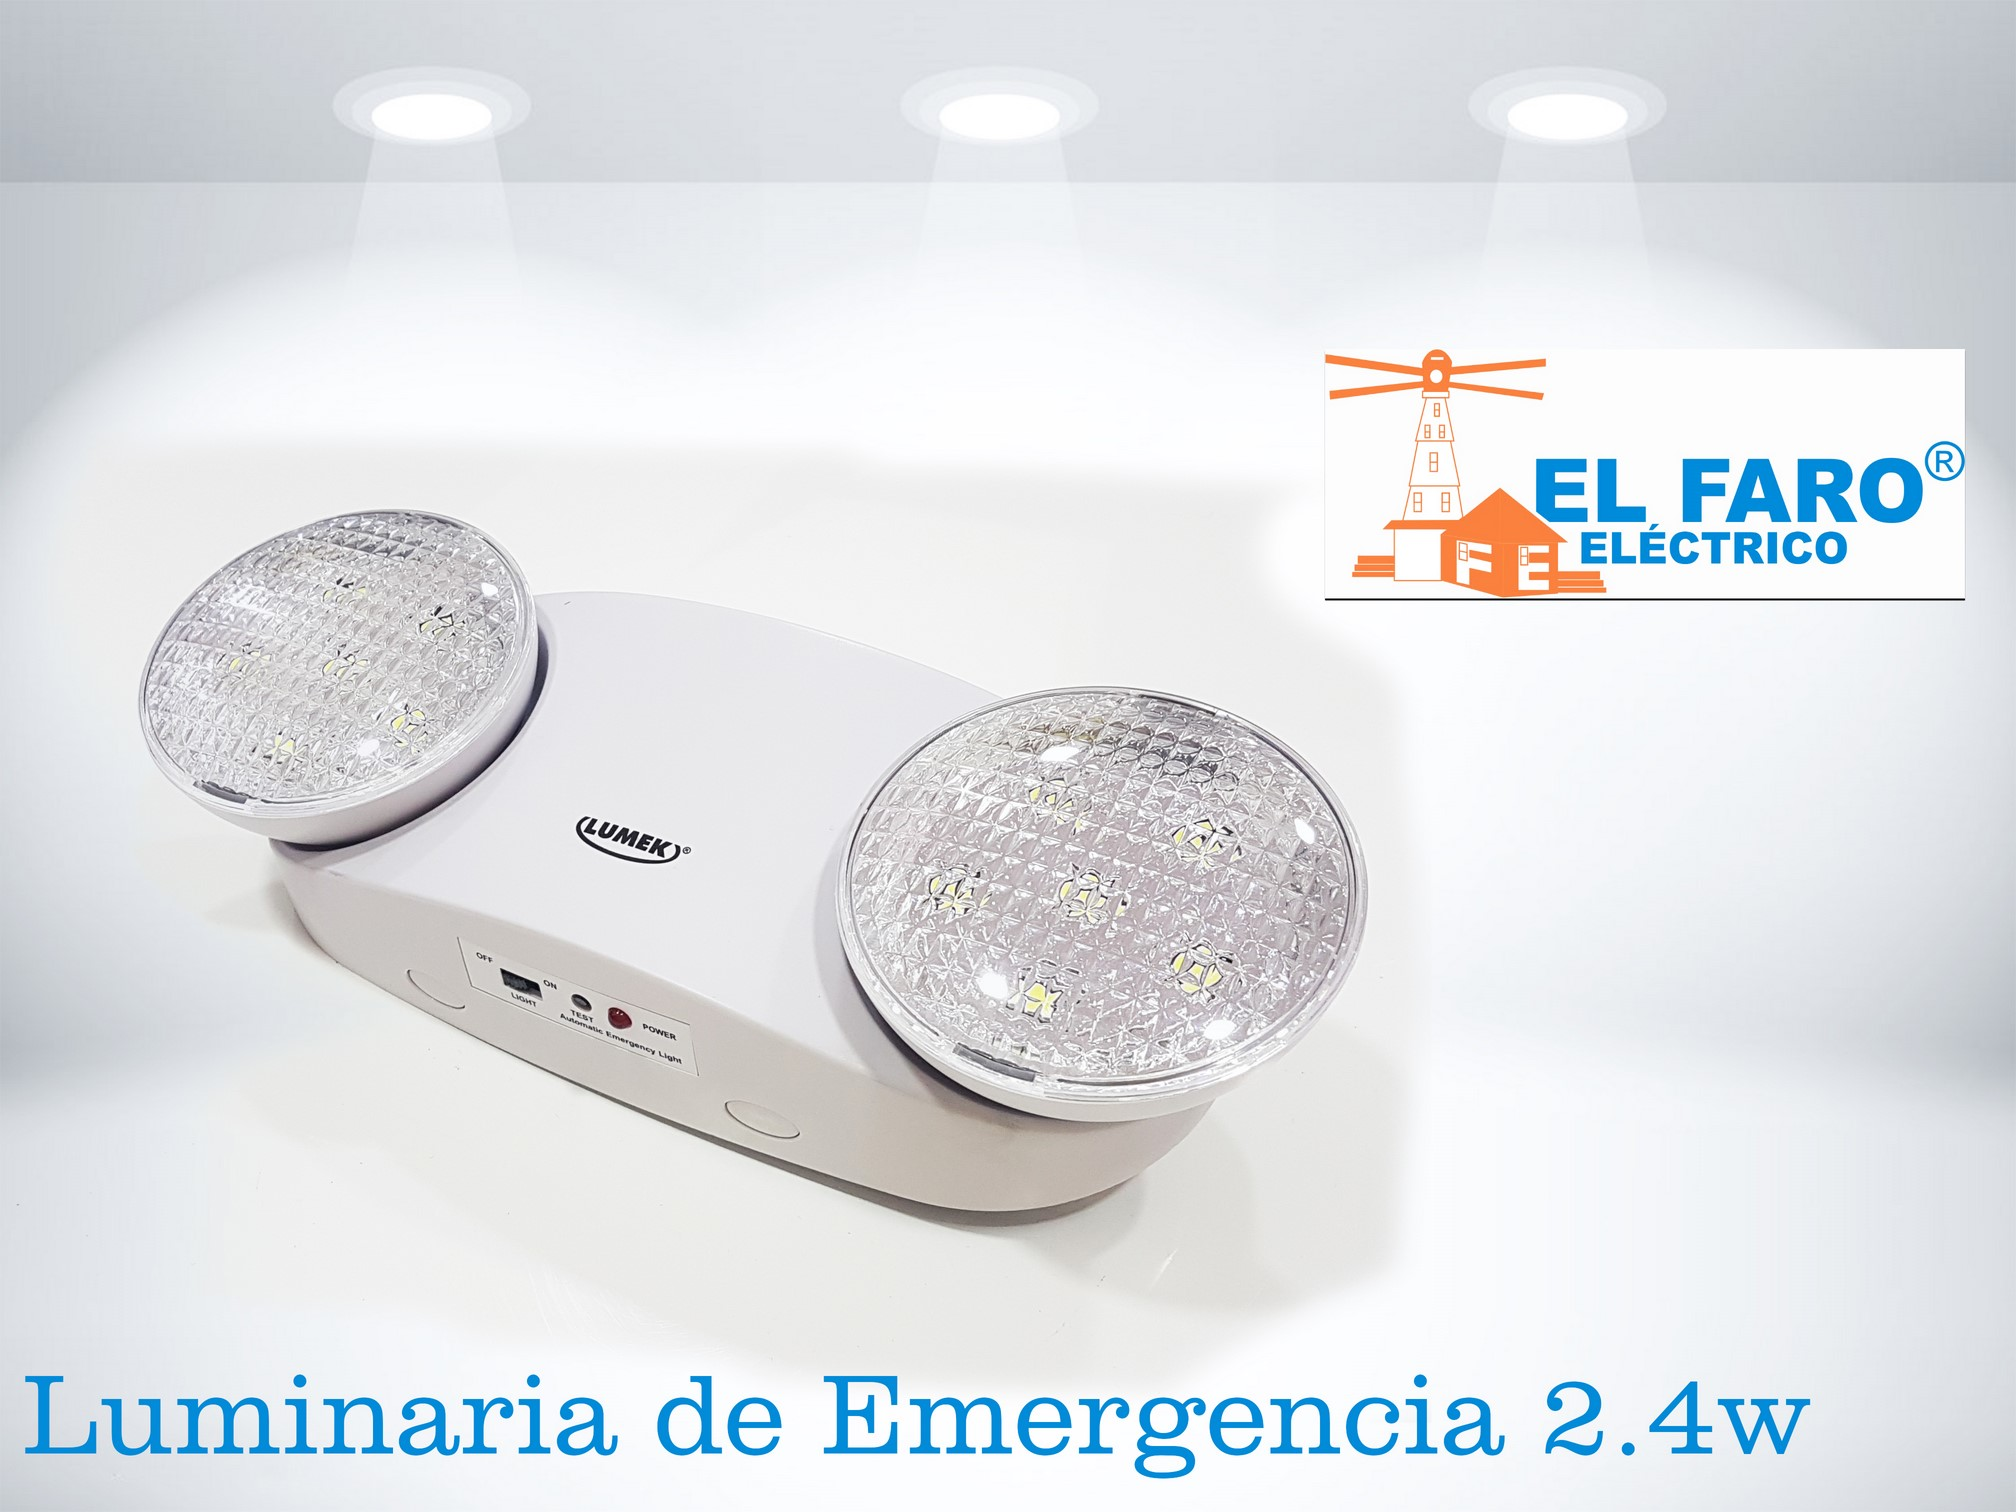 Luminaria de emergencia 2.4w LED